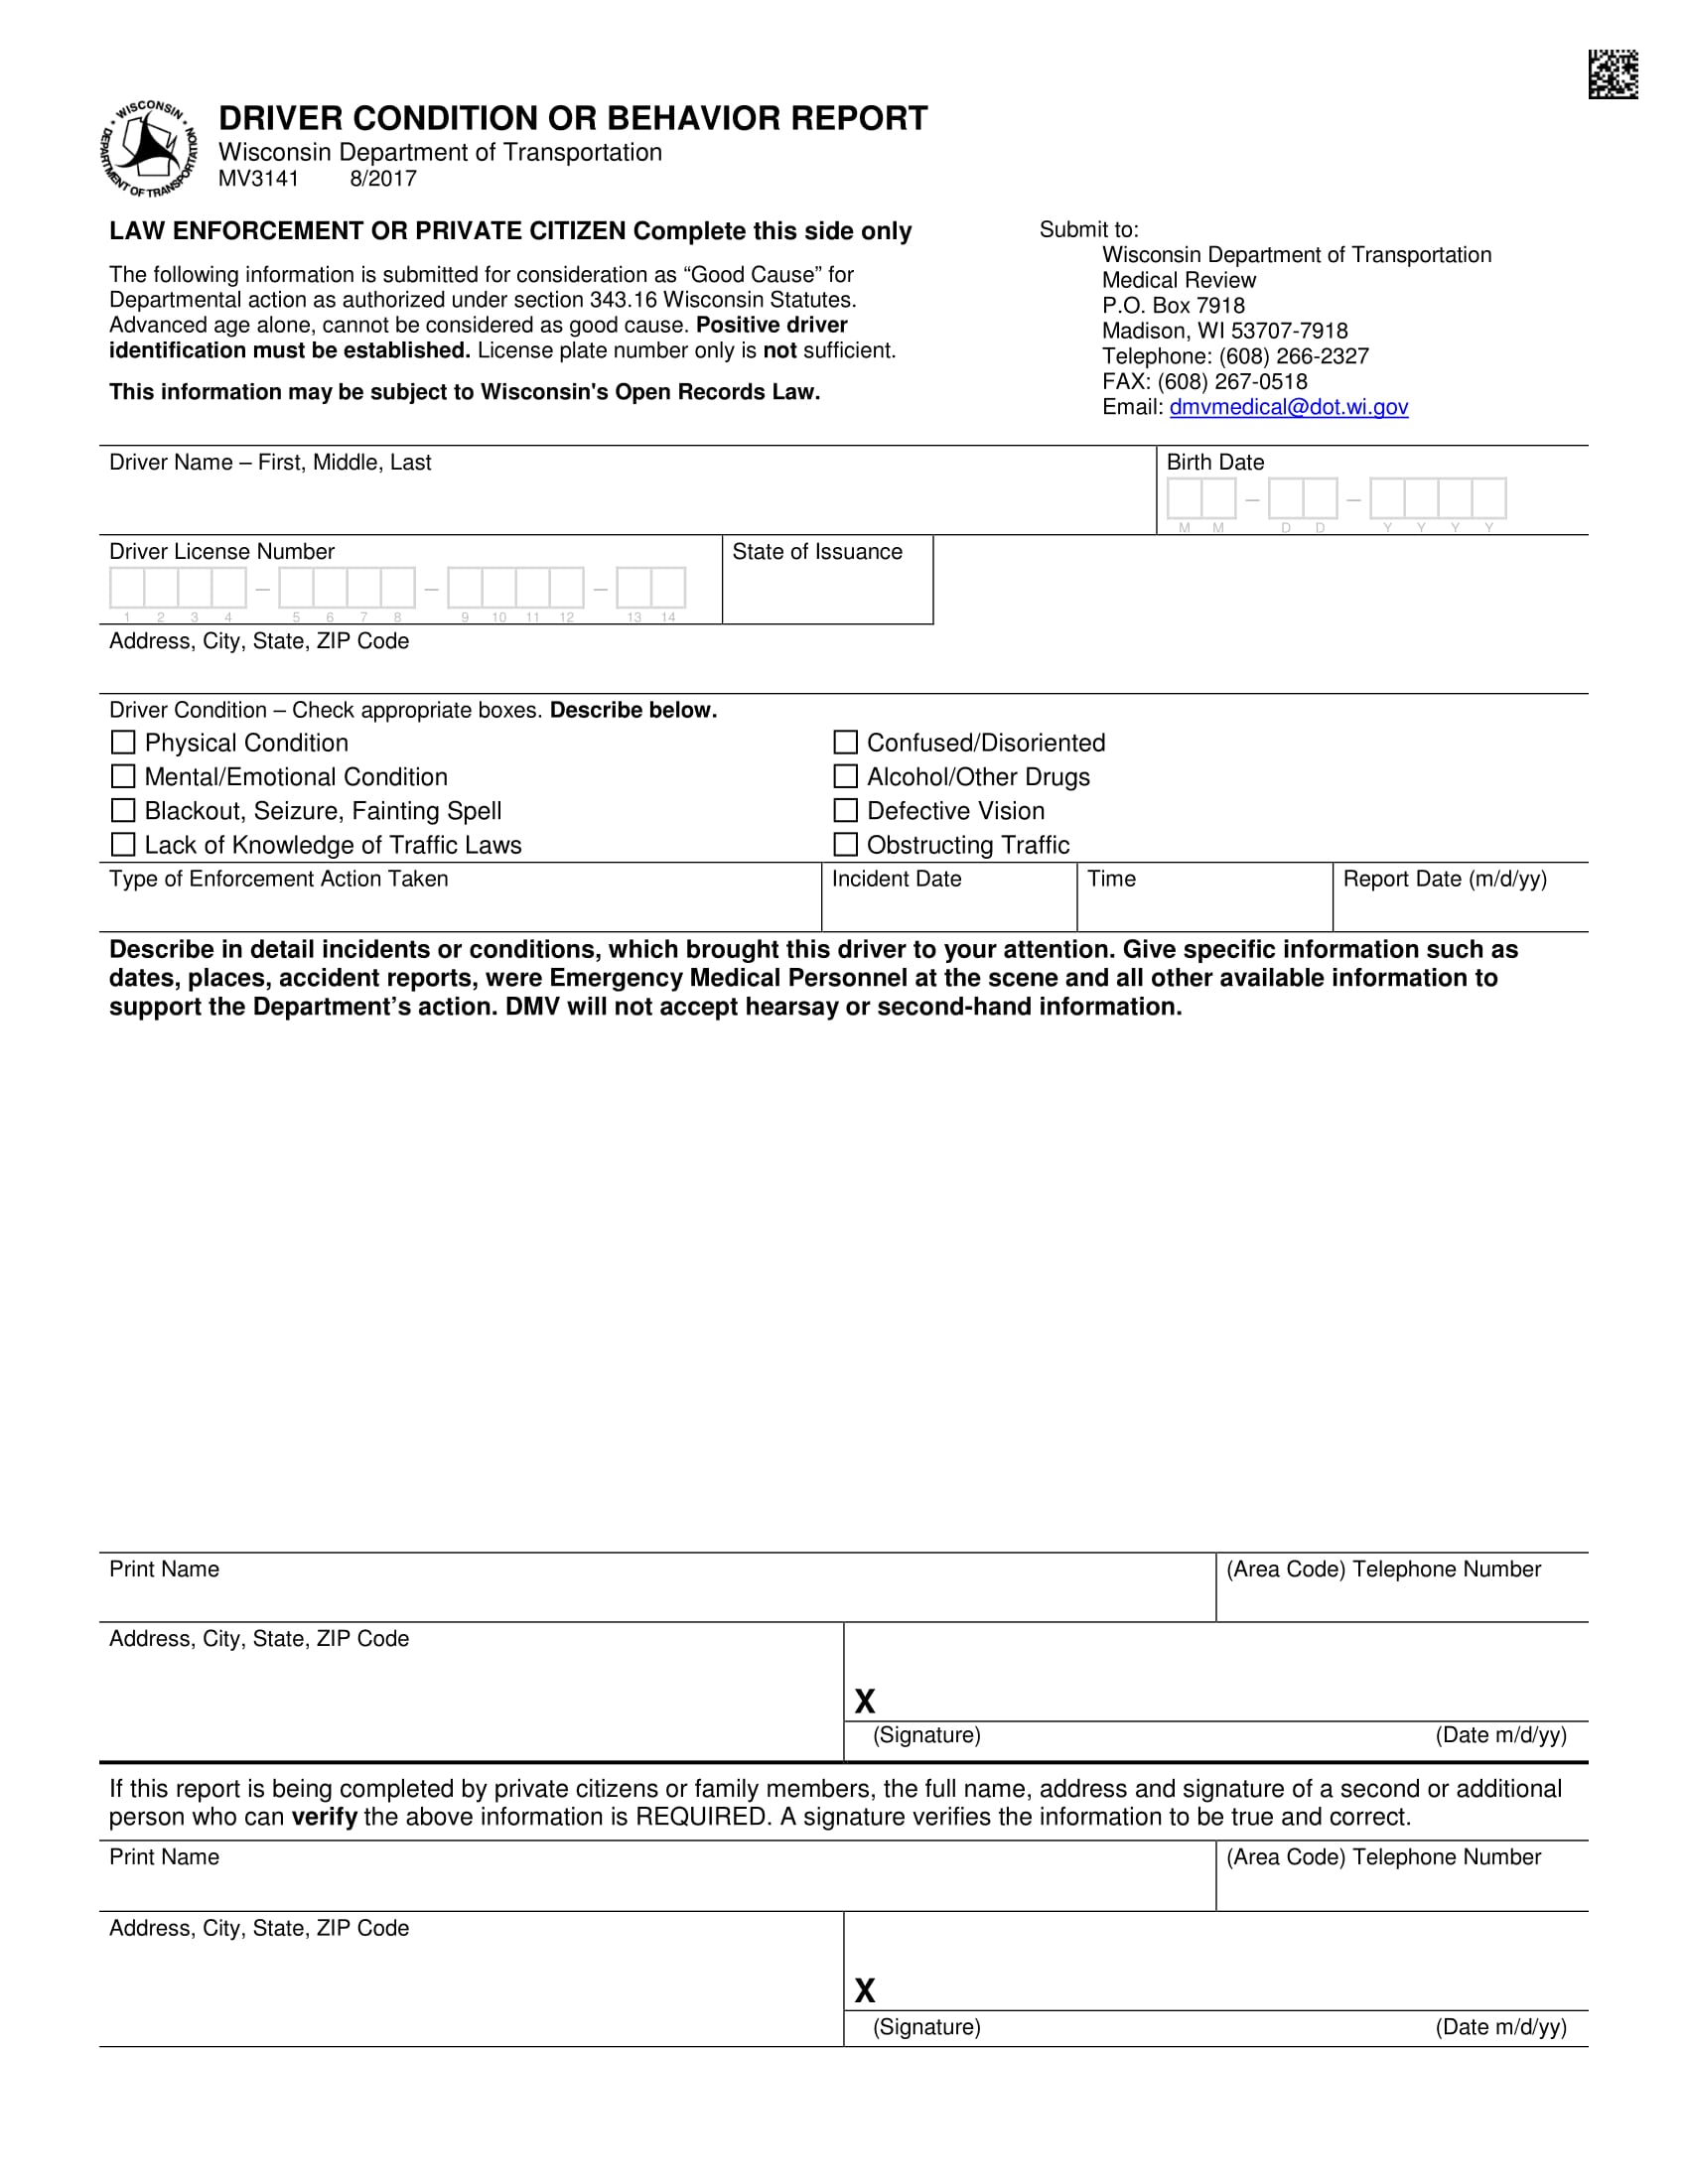 driver condition or behavior report form 1